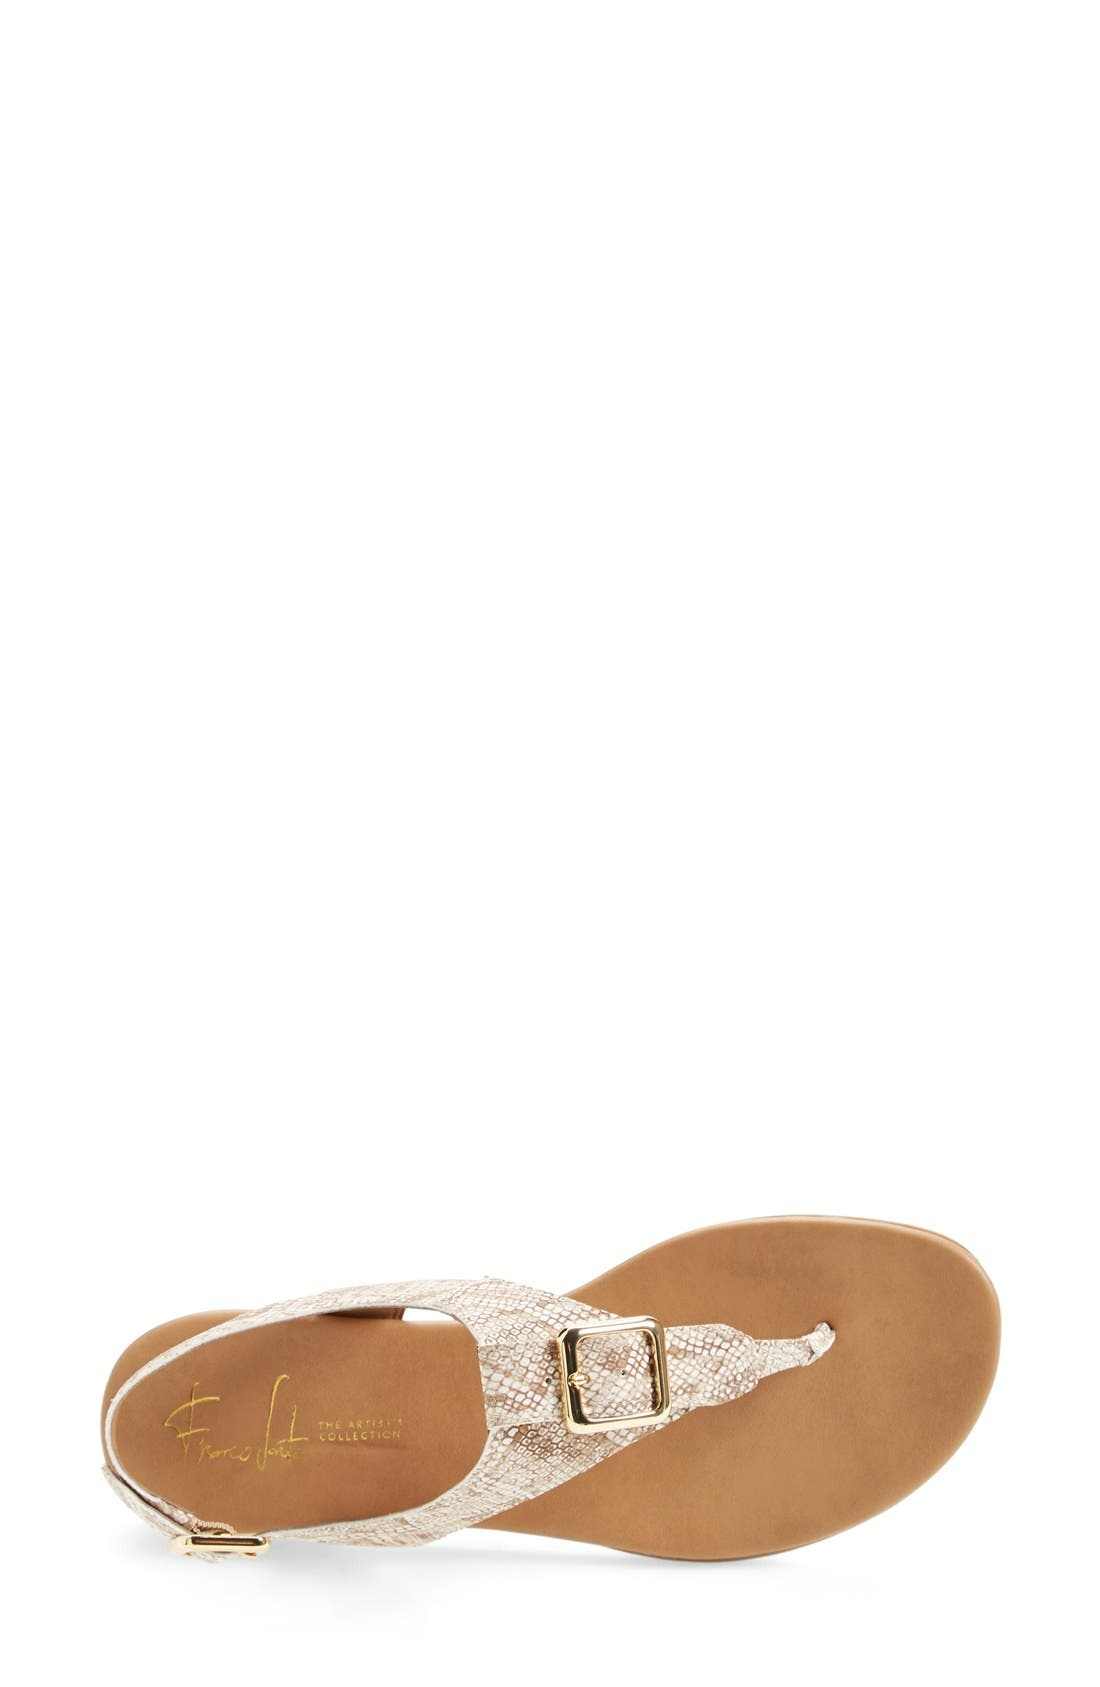 'Gita' Thong Sandal,                             Alternate thumbnail 3, color,                             Natural Snake